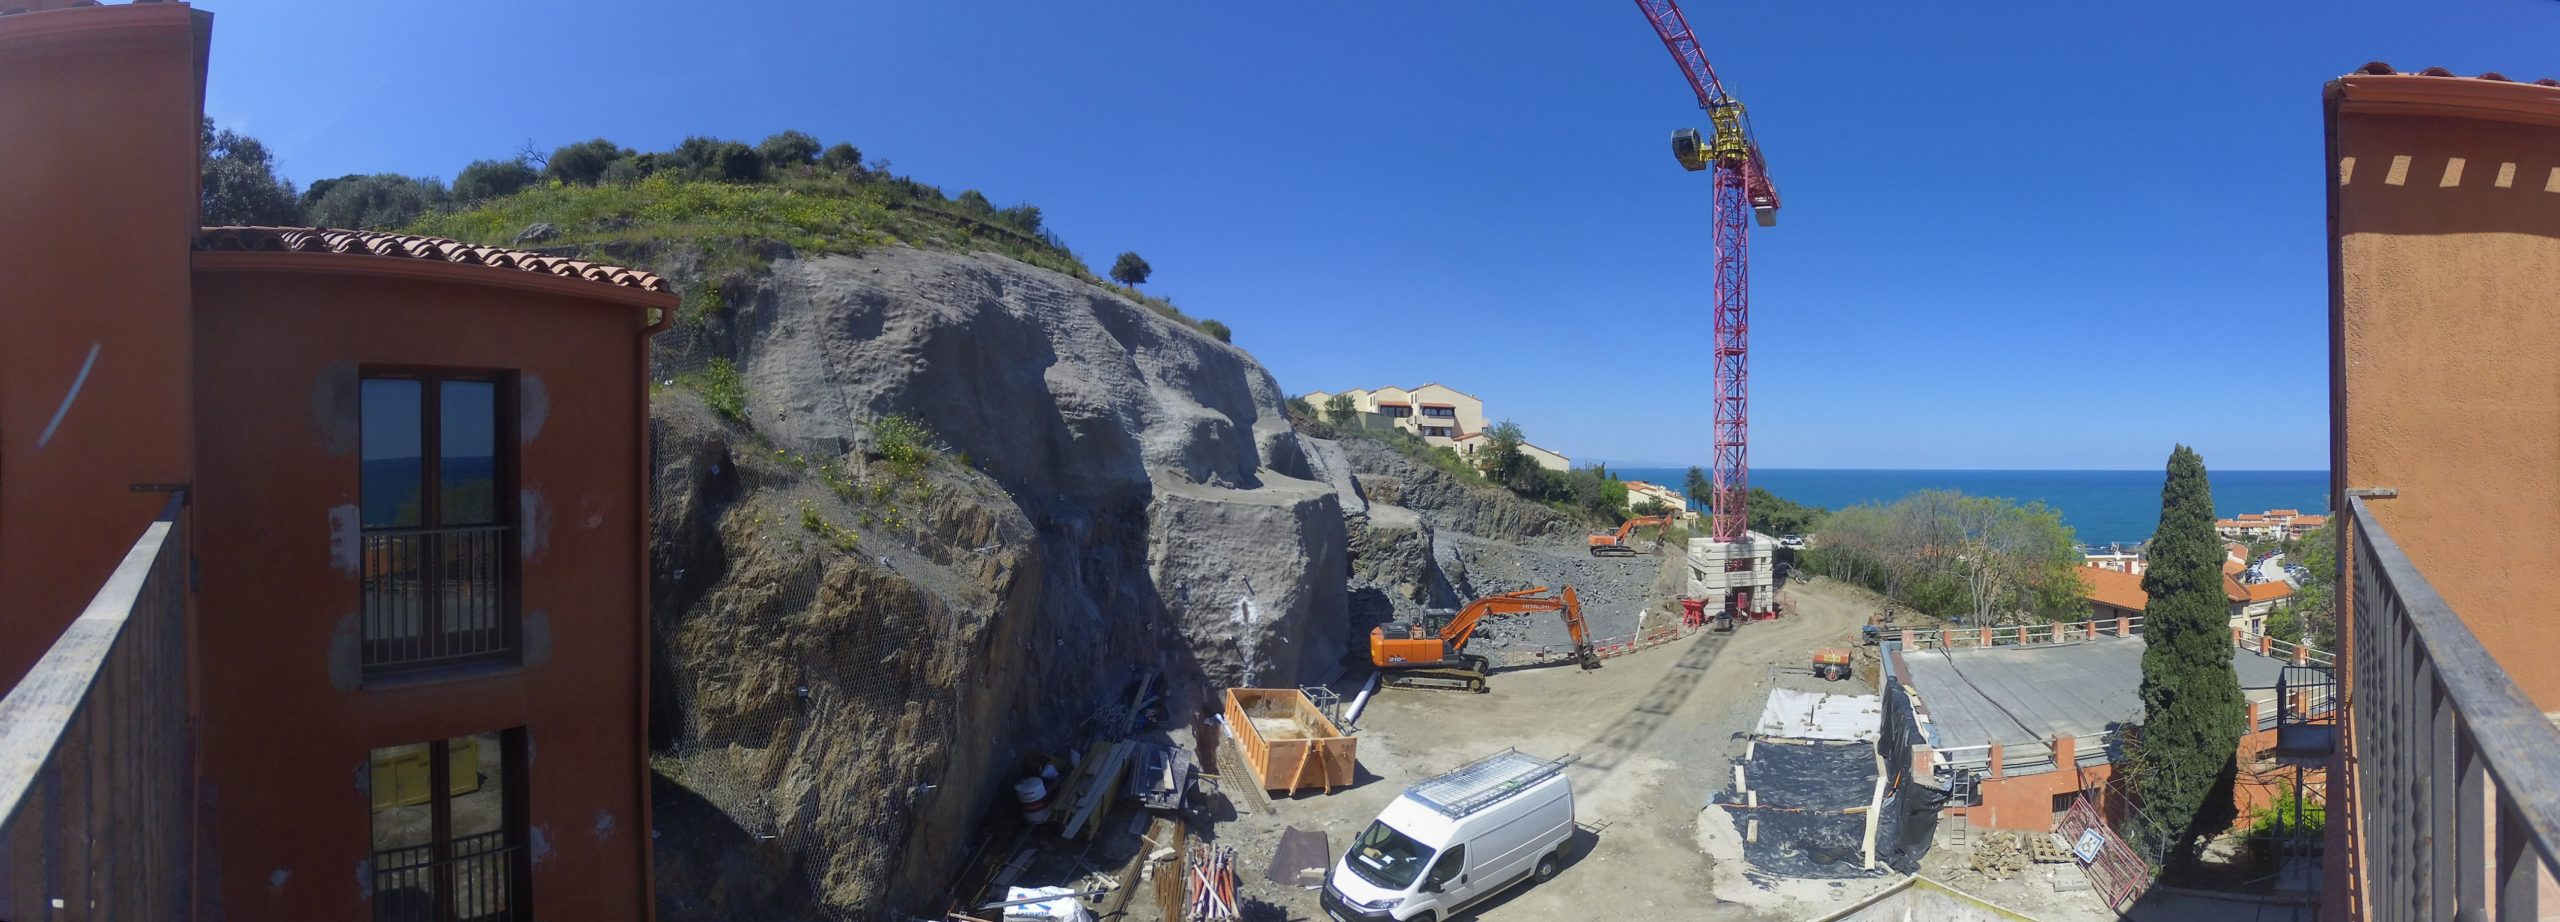 Interface timelapse projet icade Collioure